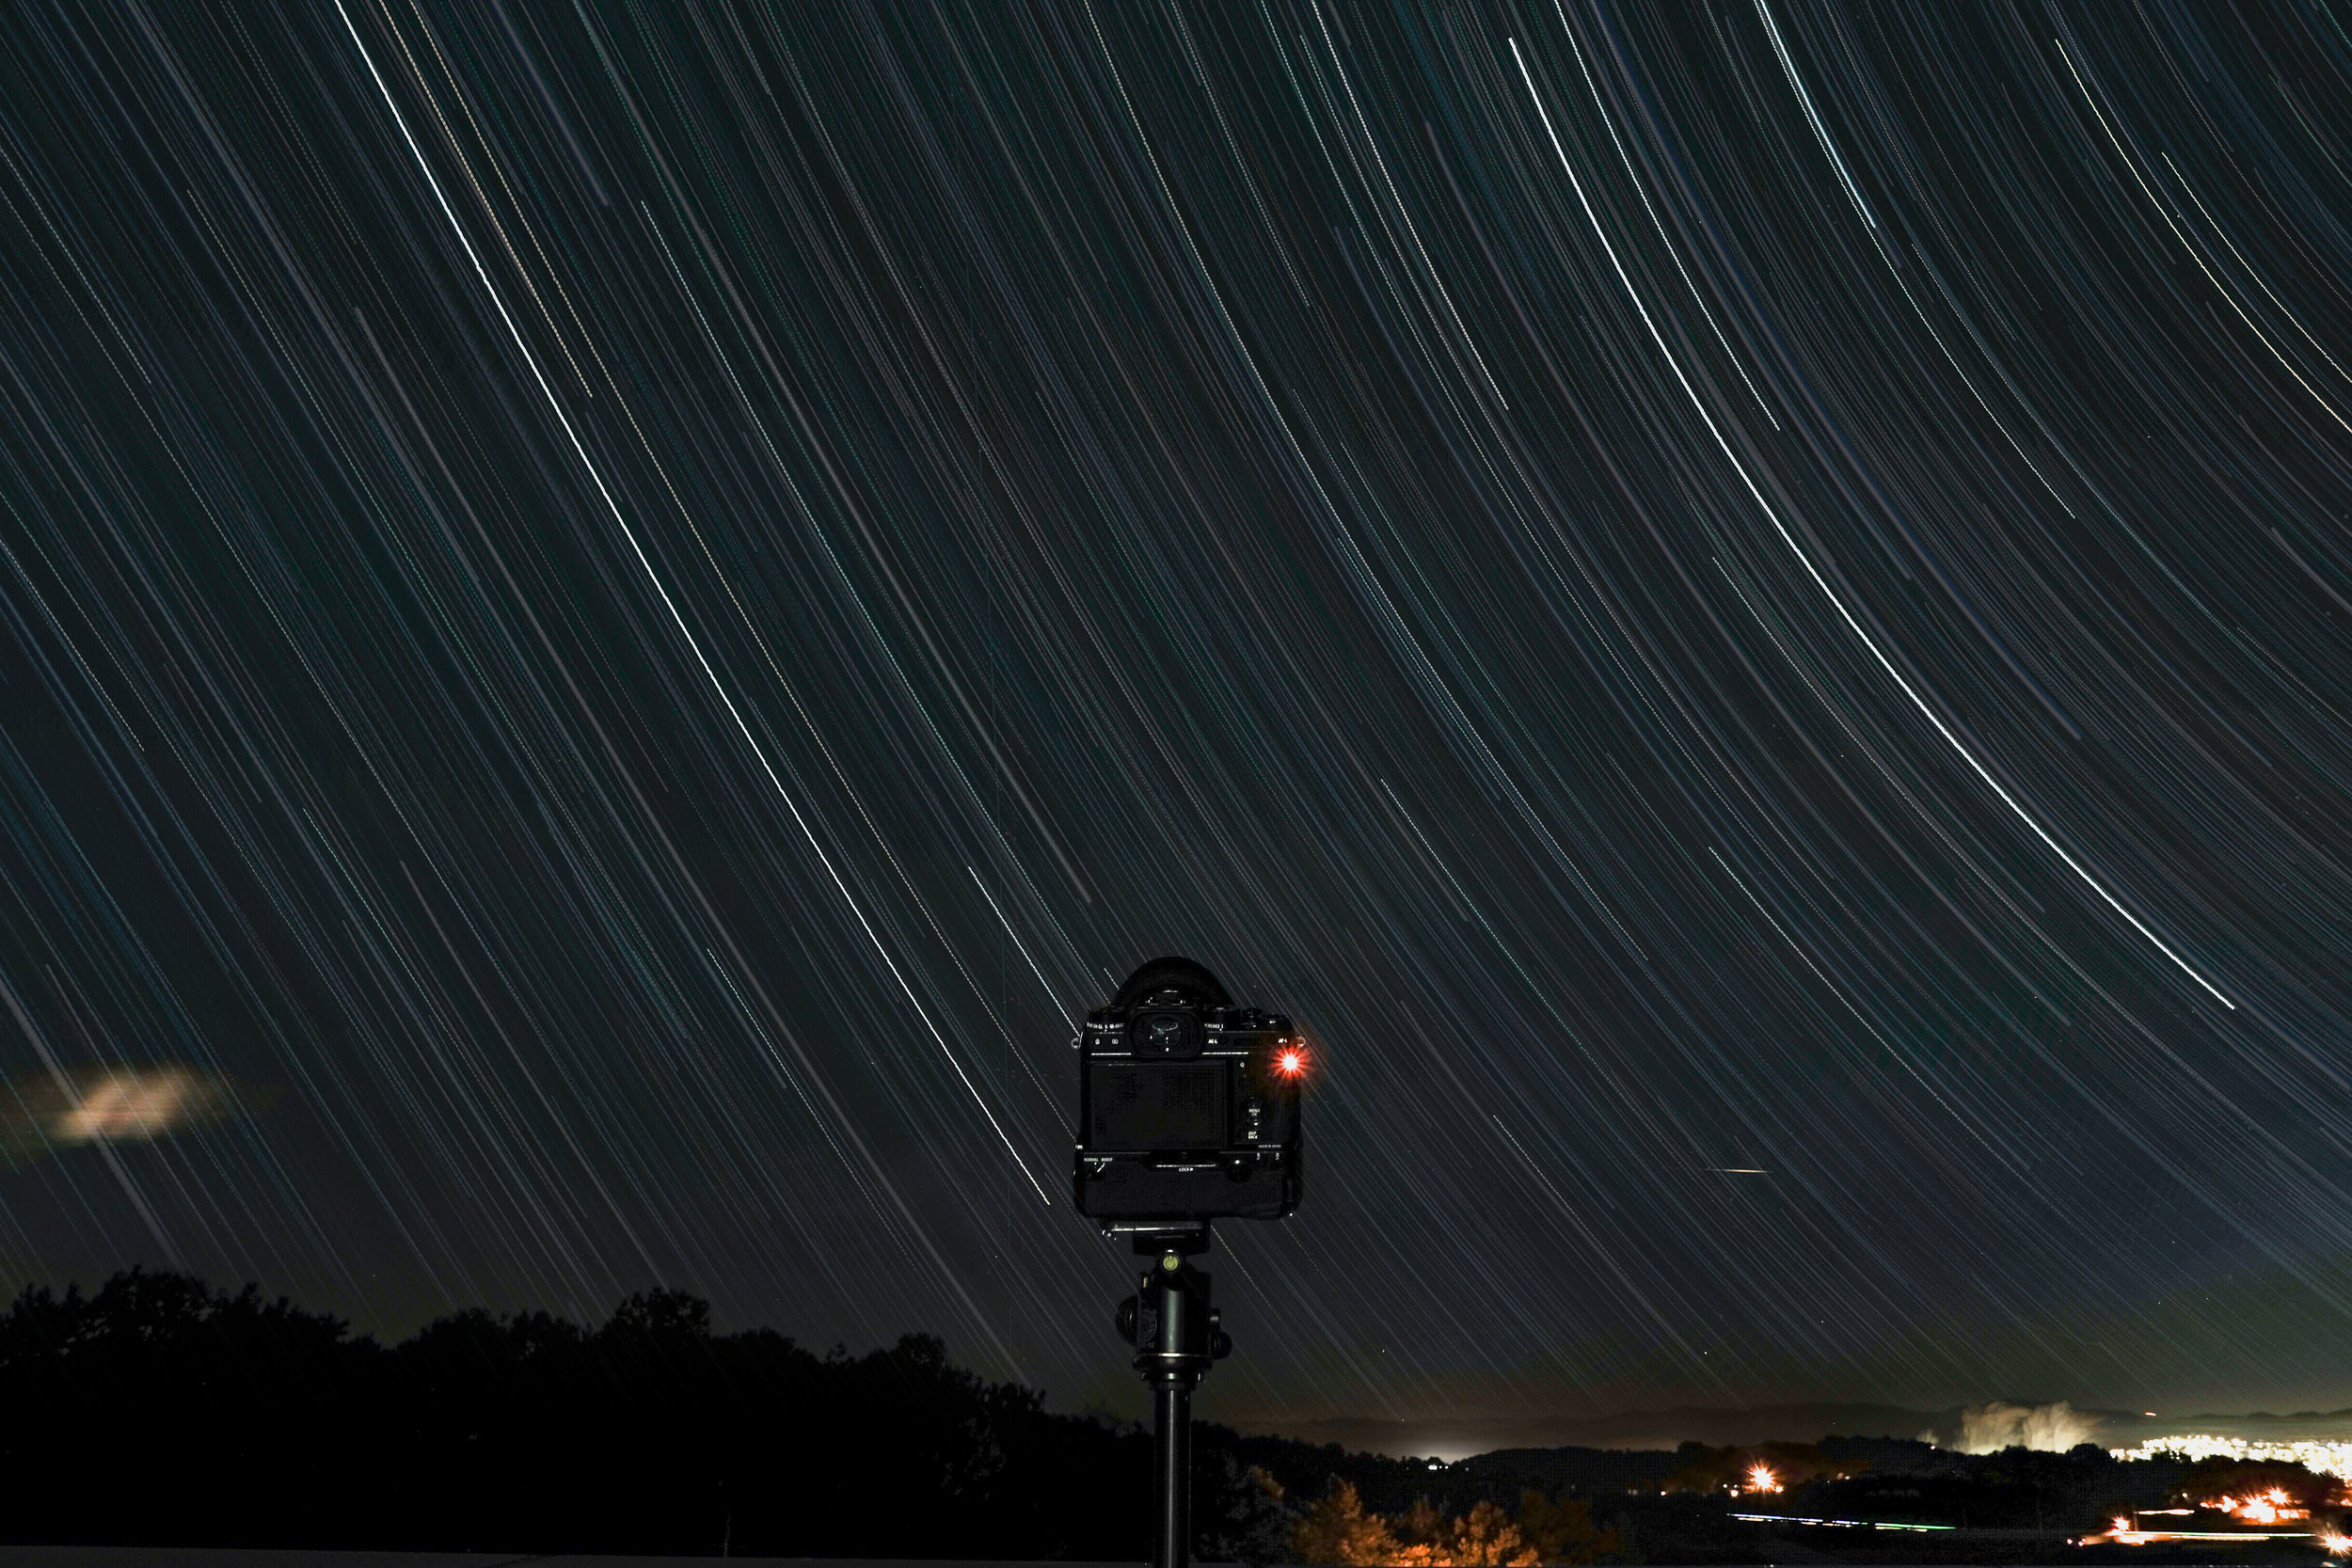 Star trails would be impossible without a solid support for the camera and lens.